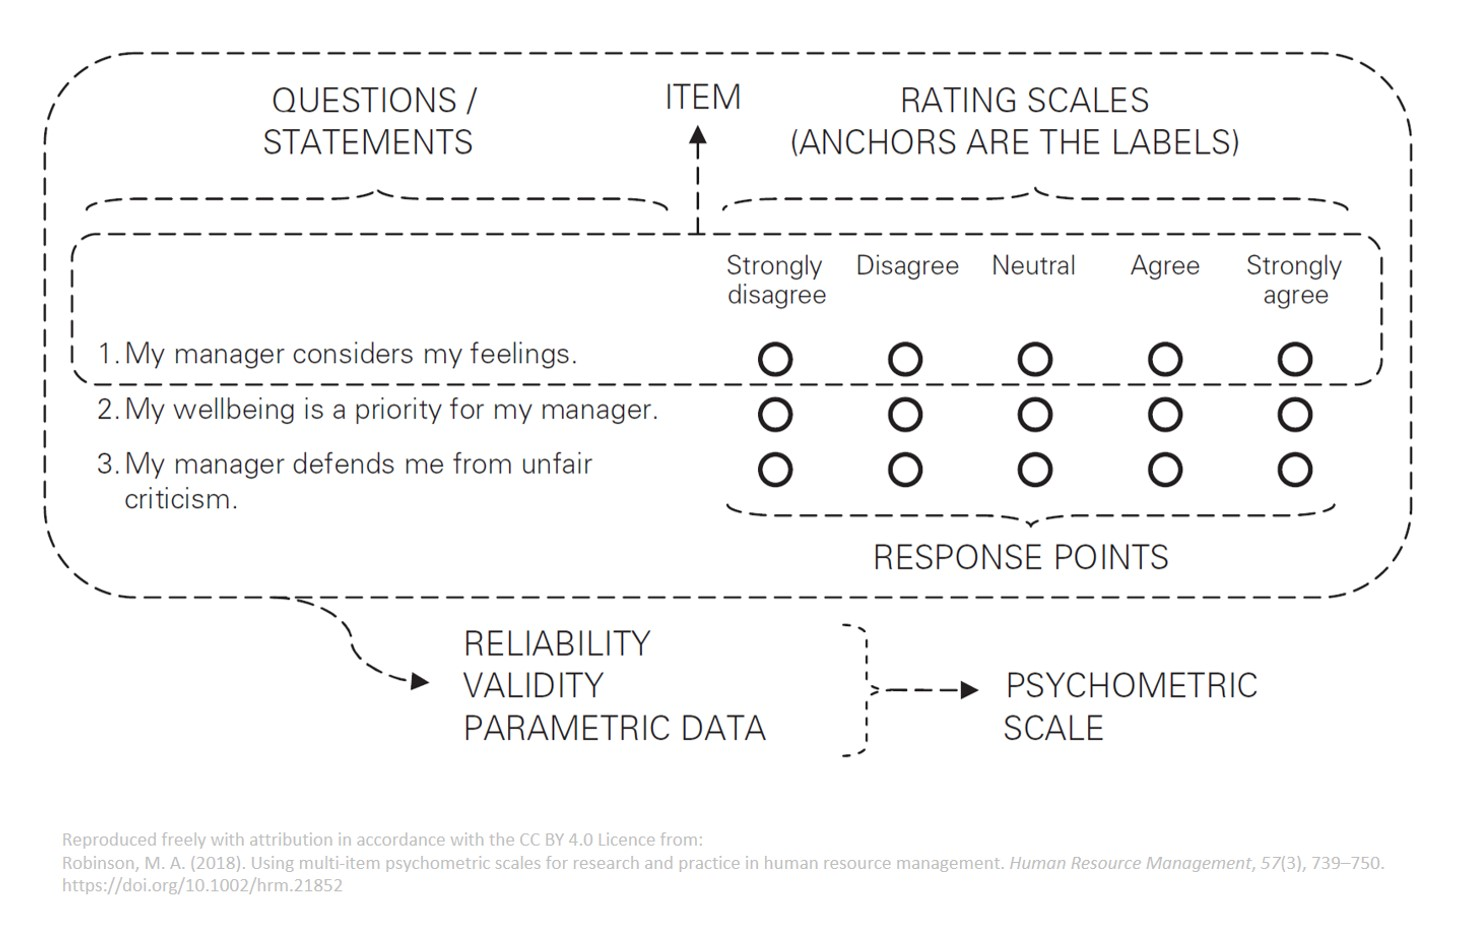 Labelled example of a multi-item psychometric scale as used in questionnaires